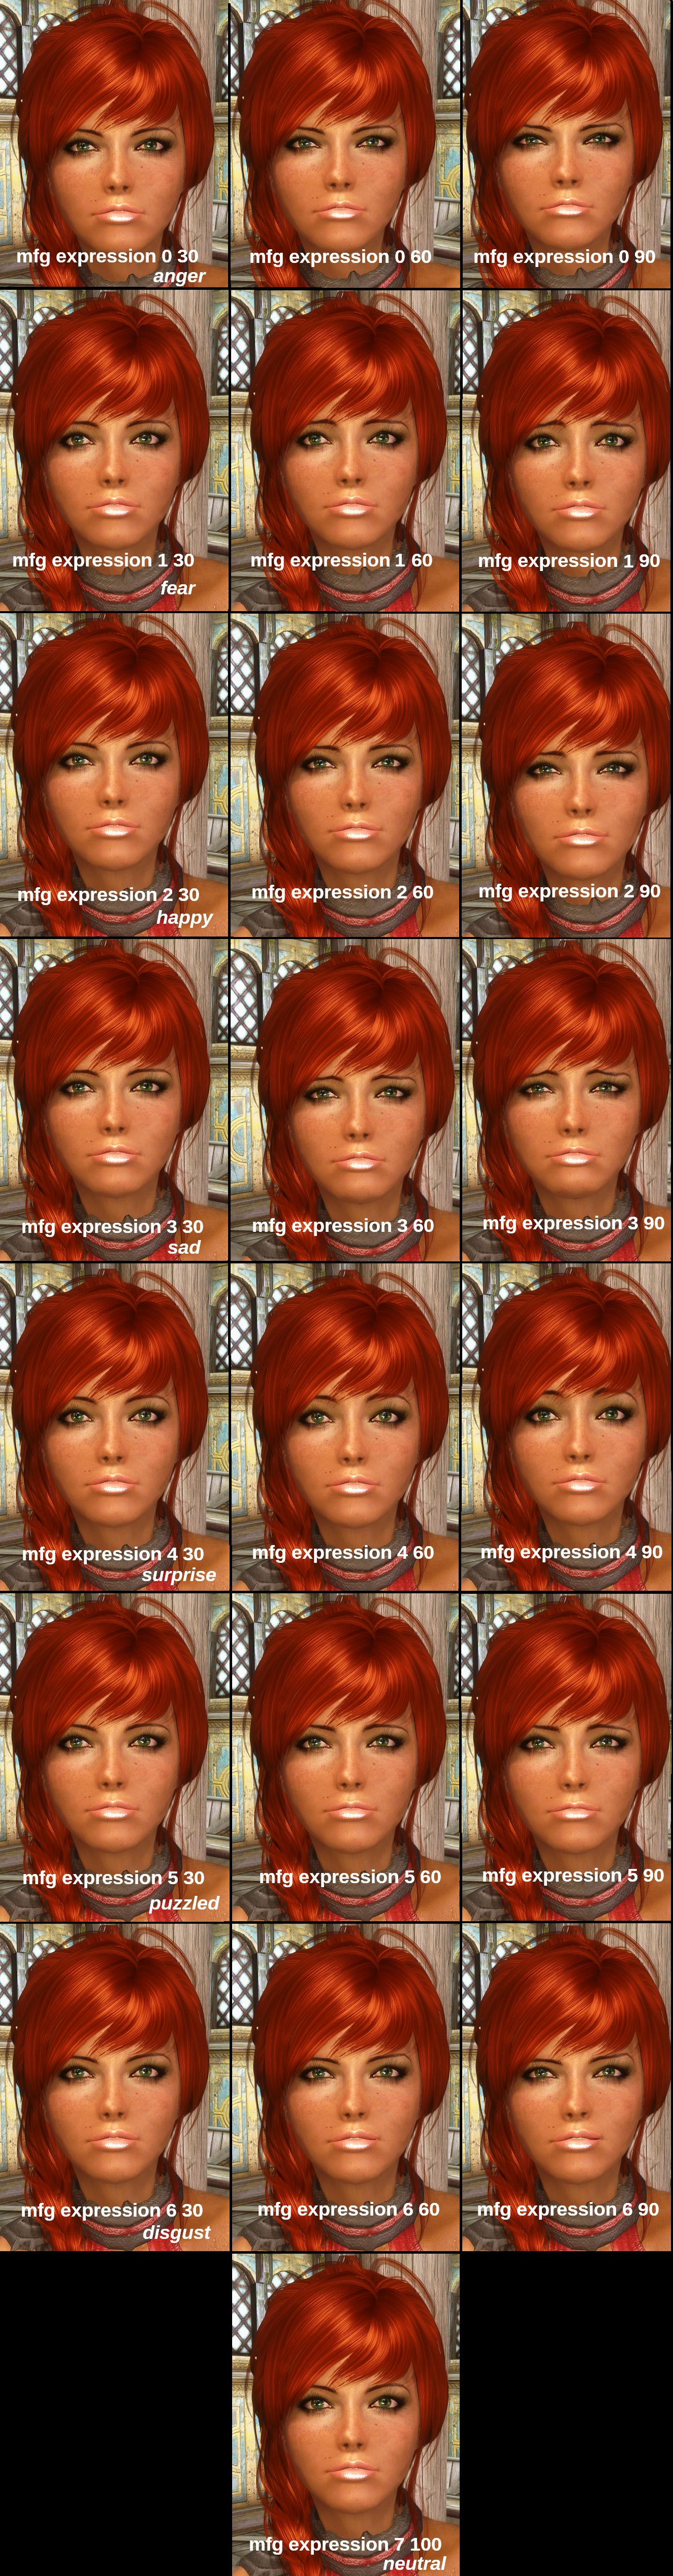 Steam Community :: Guide :: MFG - Facial expressions